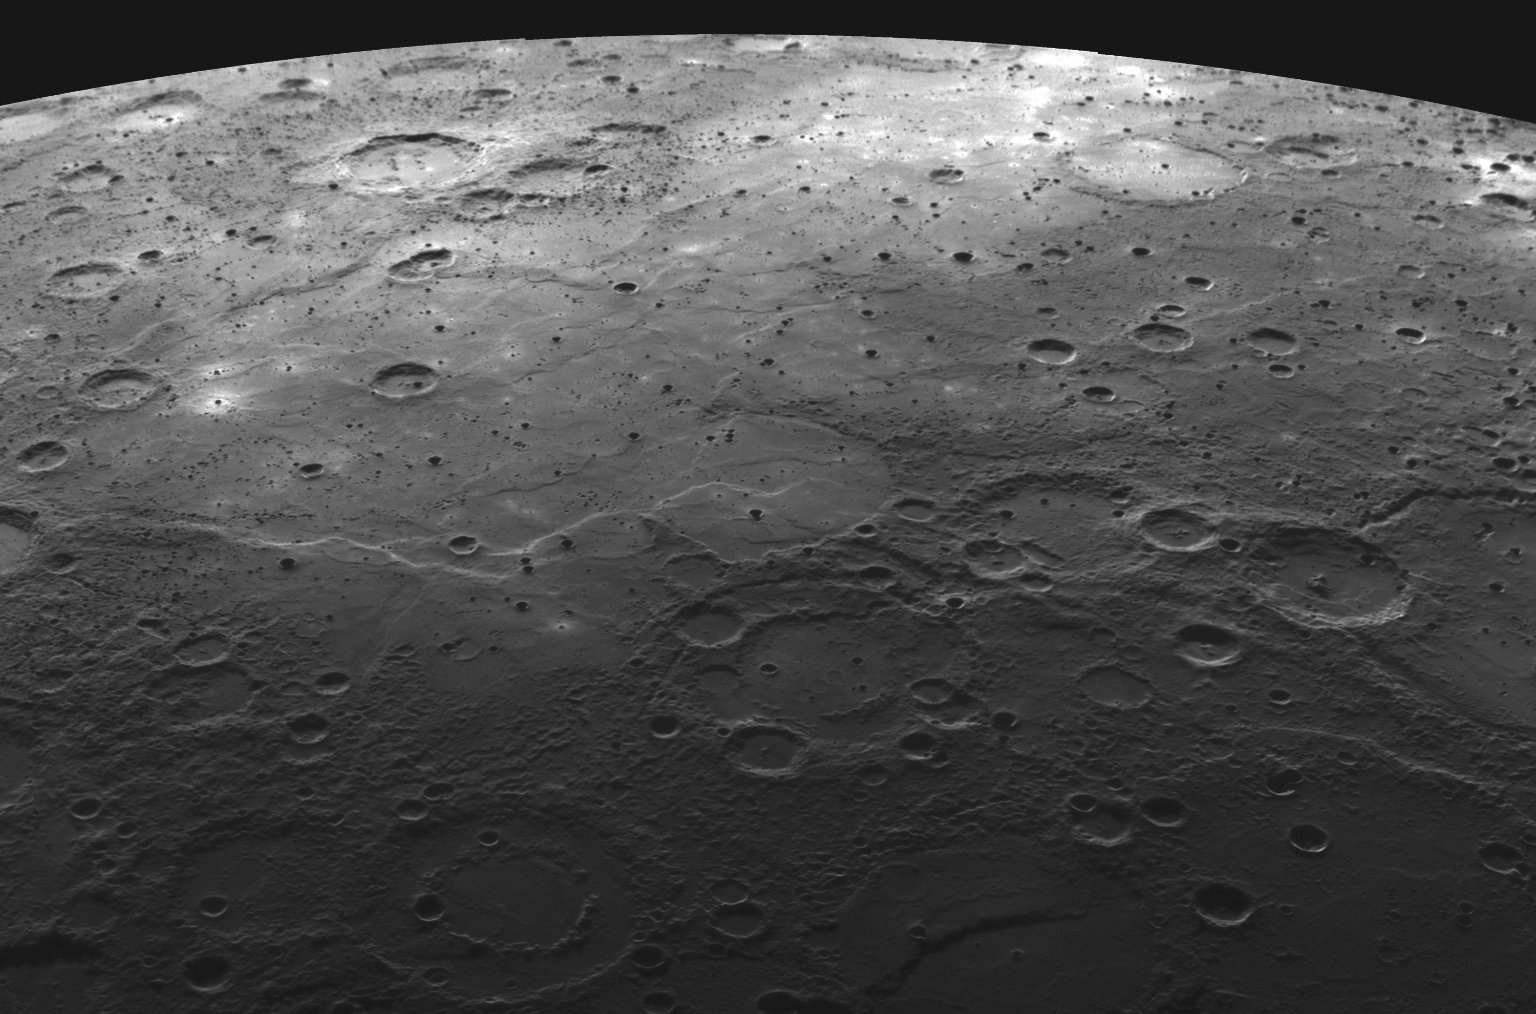 On Mercury